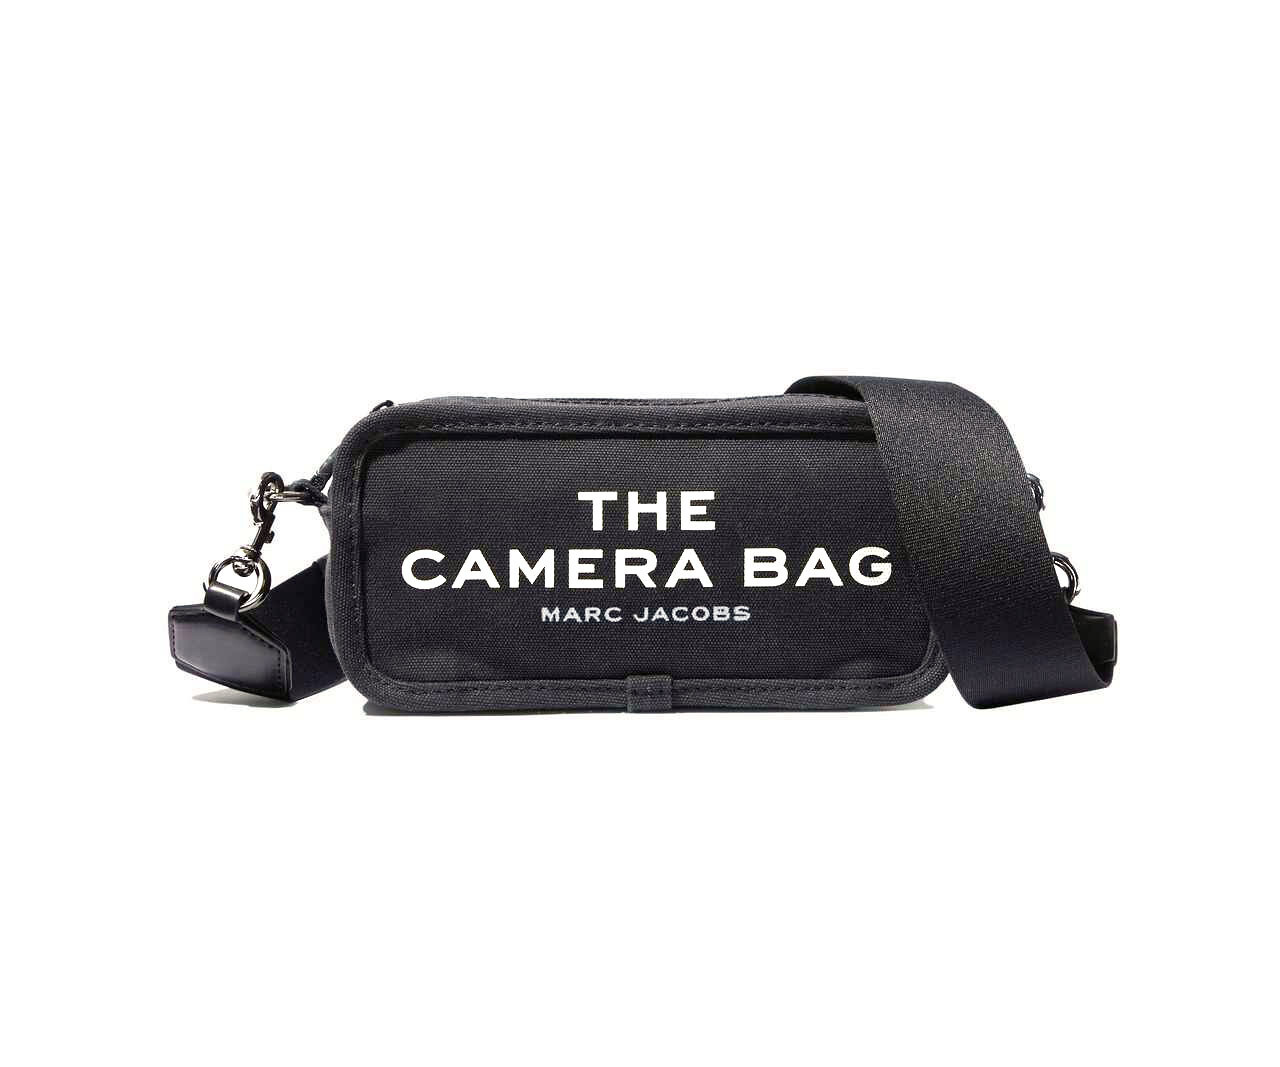 The Camera Bag   THE MARC JACOBS